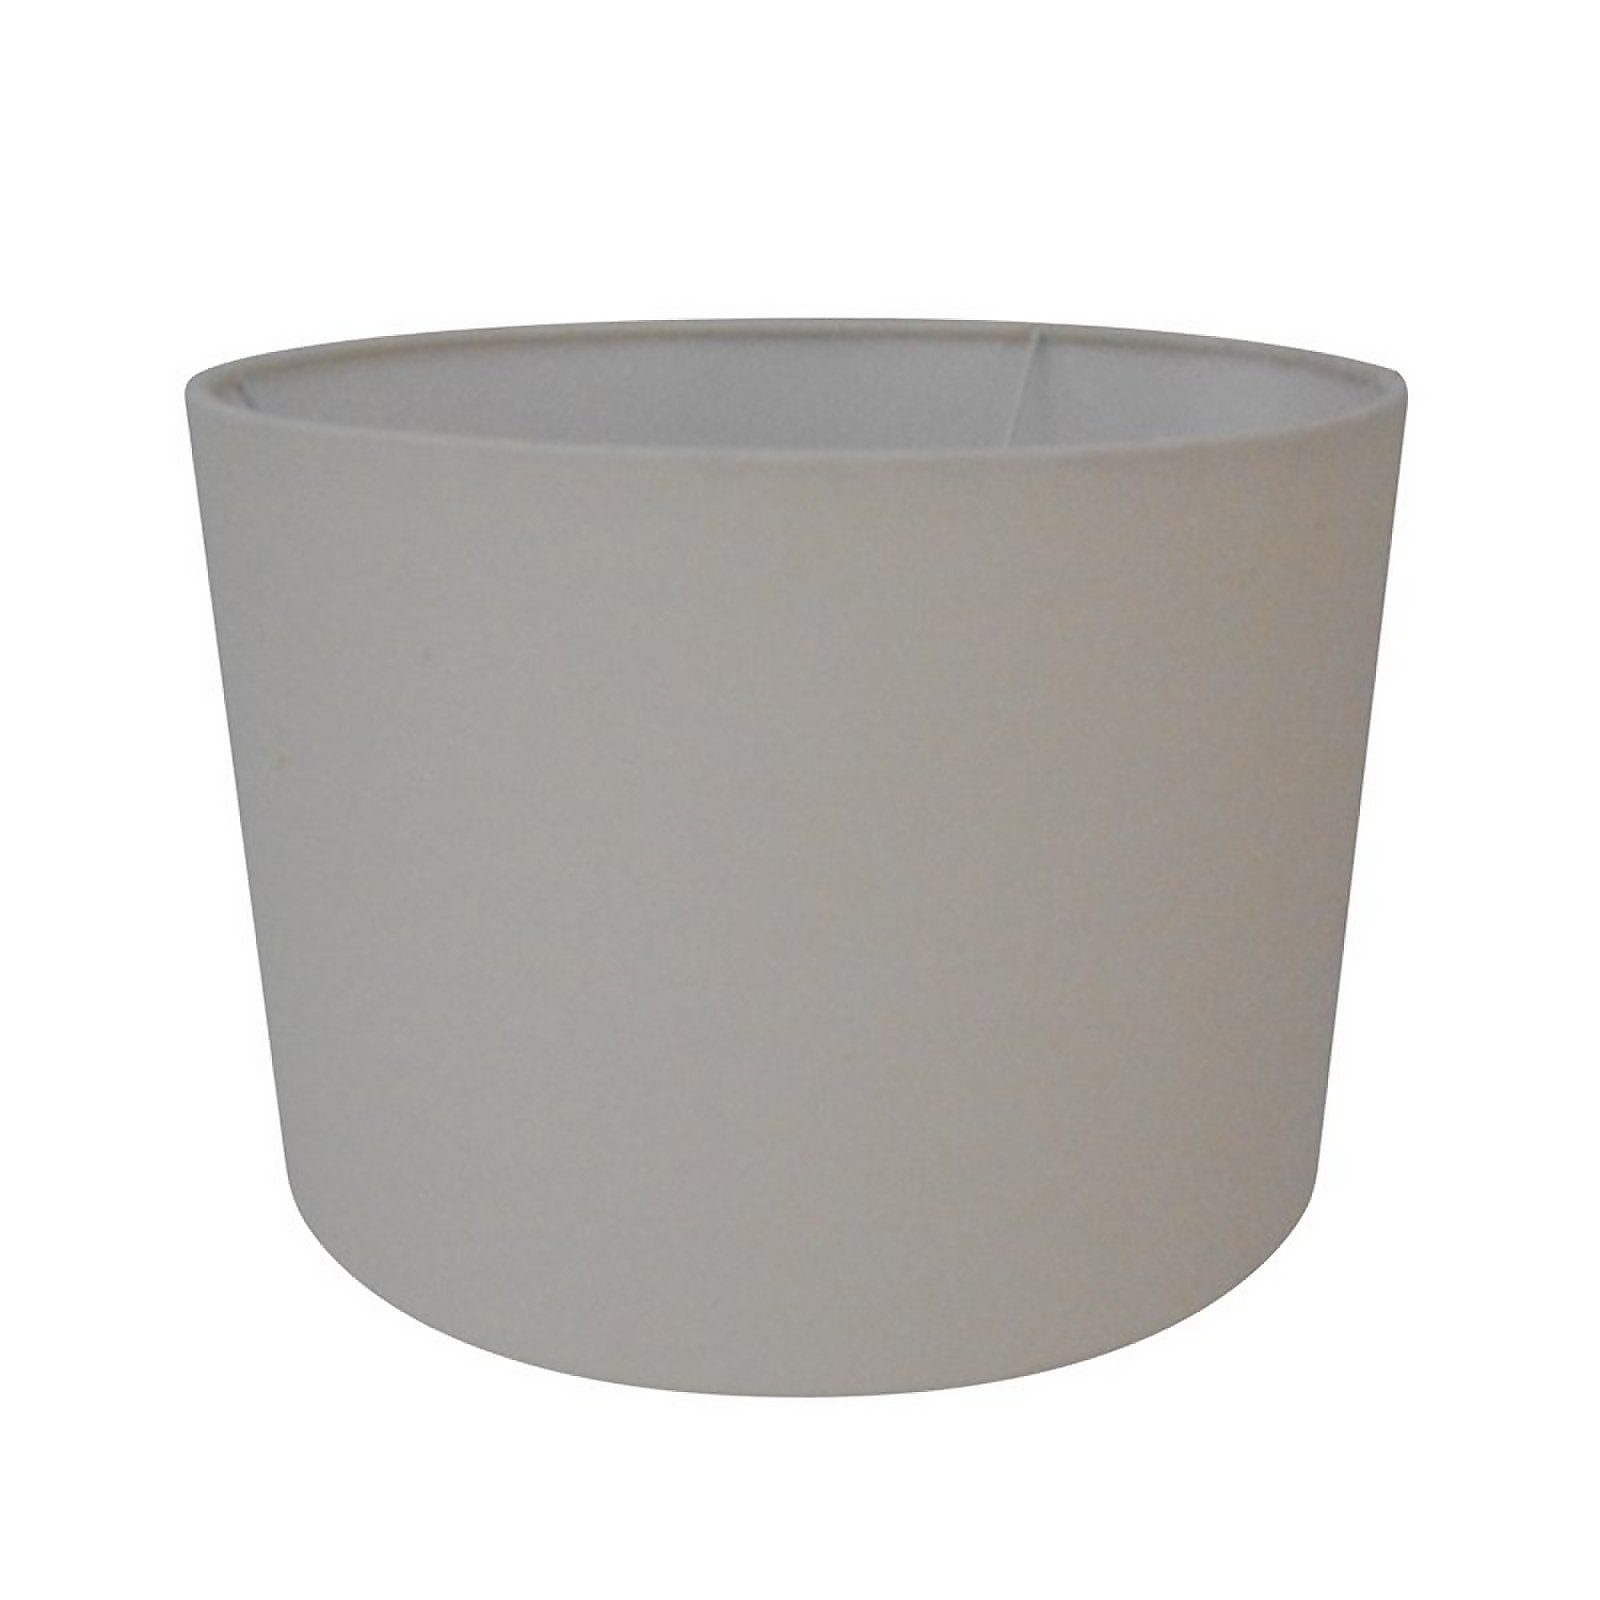 25cm Cream Self Lined Linen Drum Shade